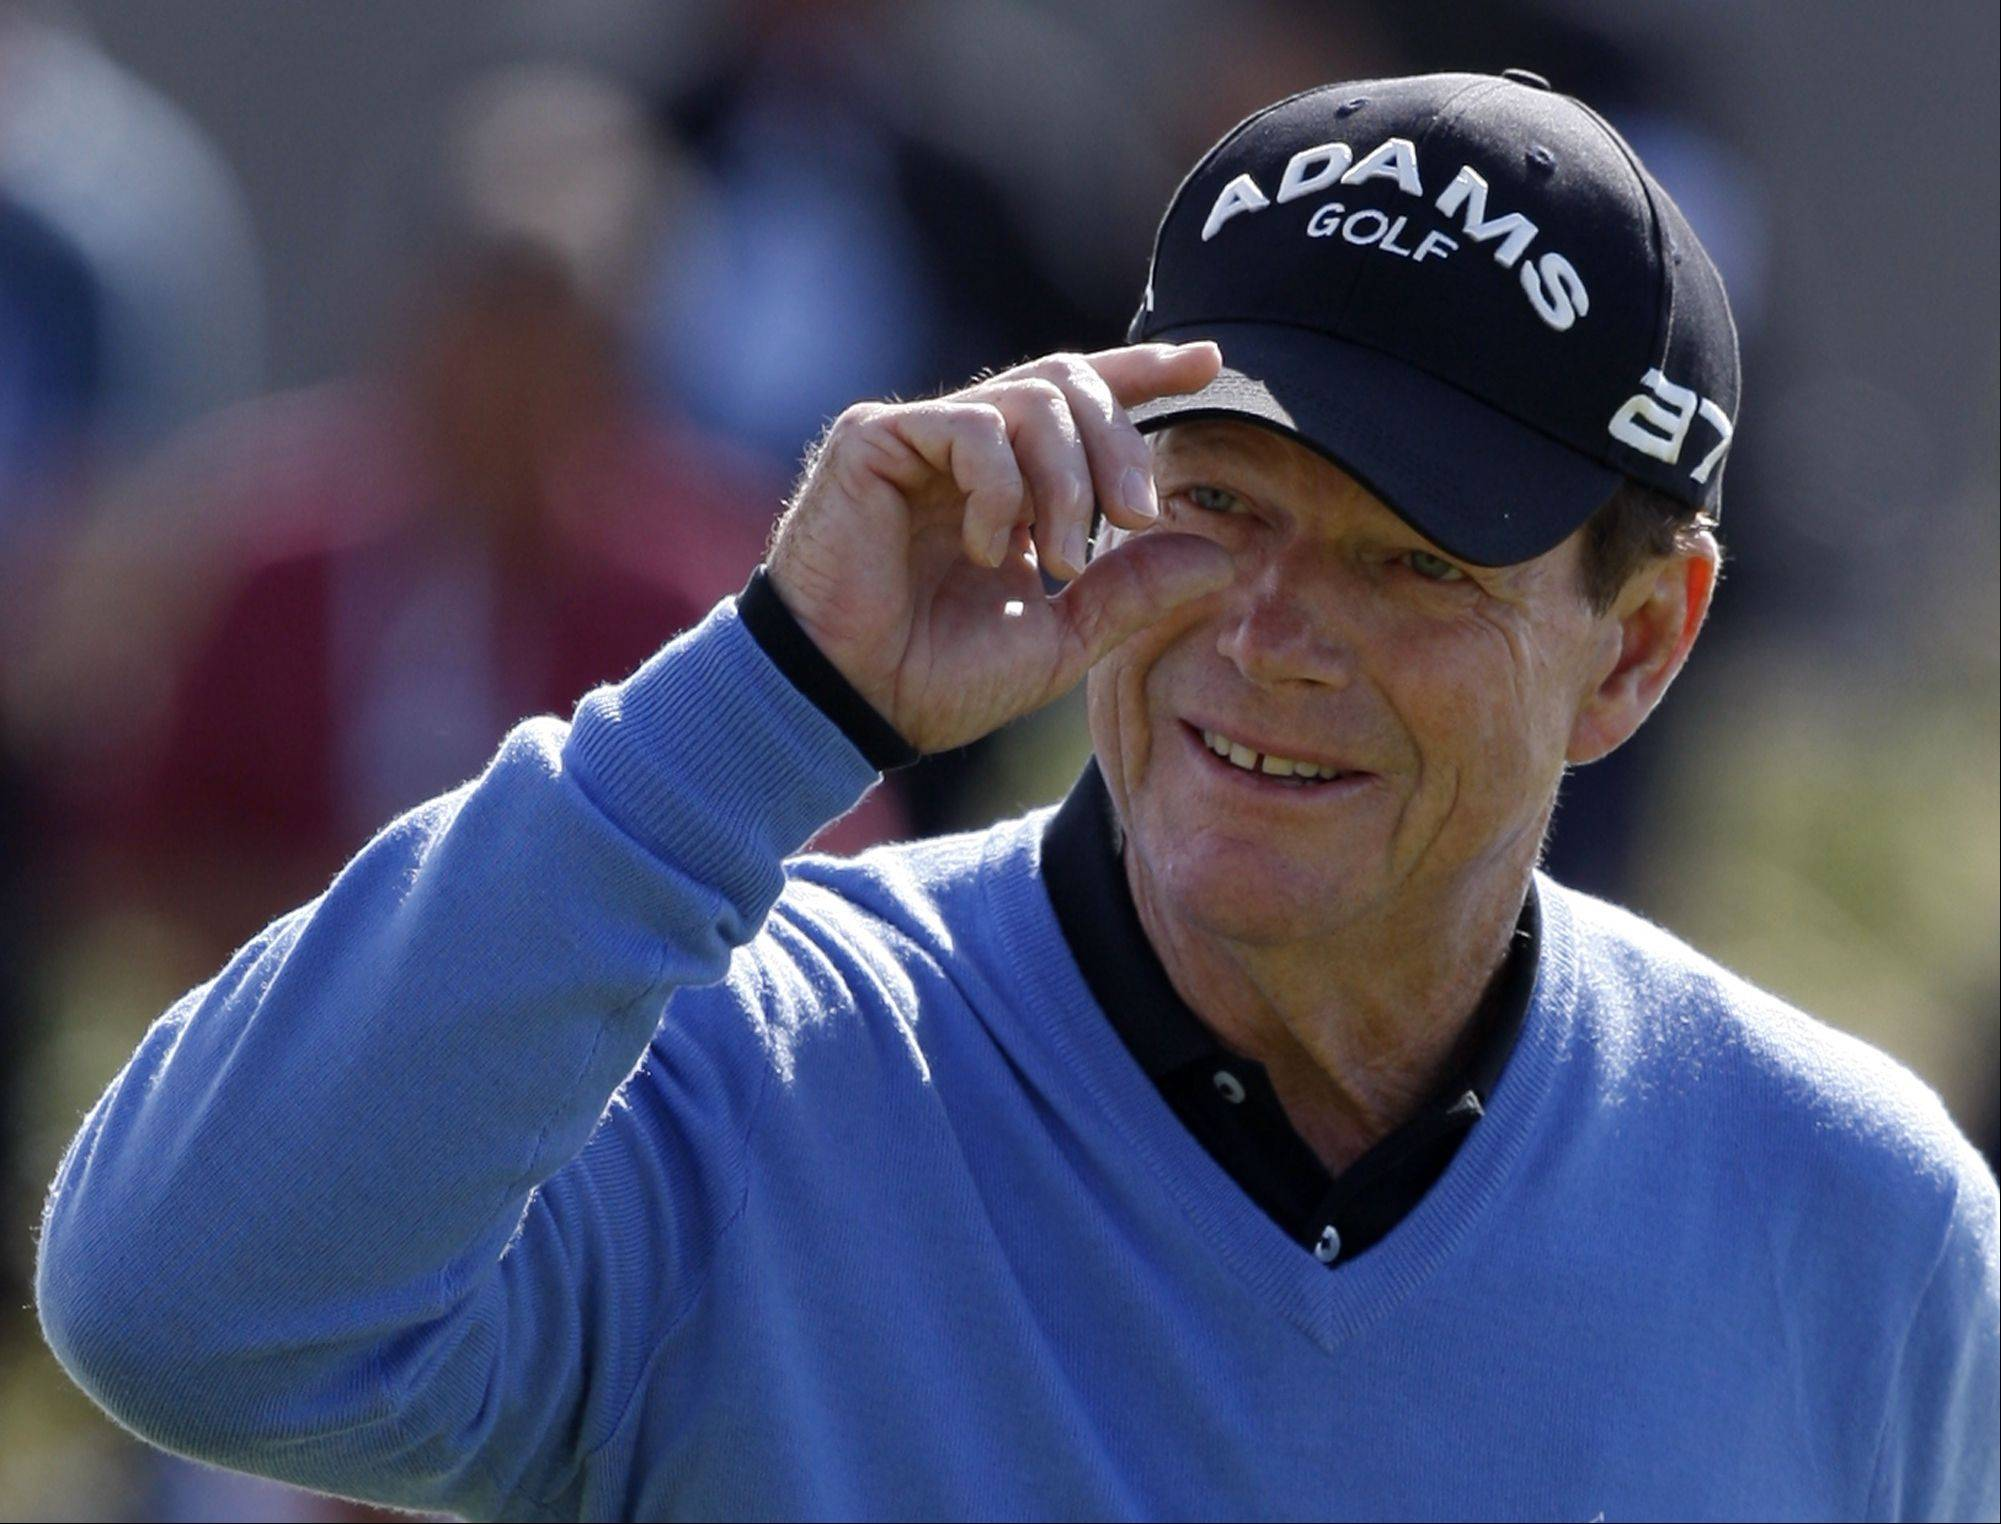 Tom Watson is the first repeat captain for the U.S. Ryder Cup team since Jack Nicklaus in 1987. Team USA has lost seven of the last nine Ryder Cups, with the most recent a stunning loss at Medinah Country Club last September.